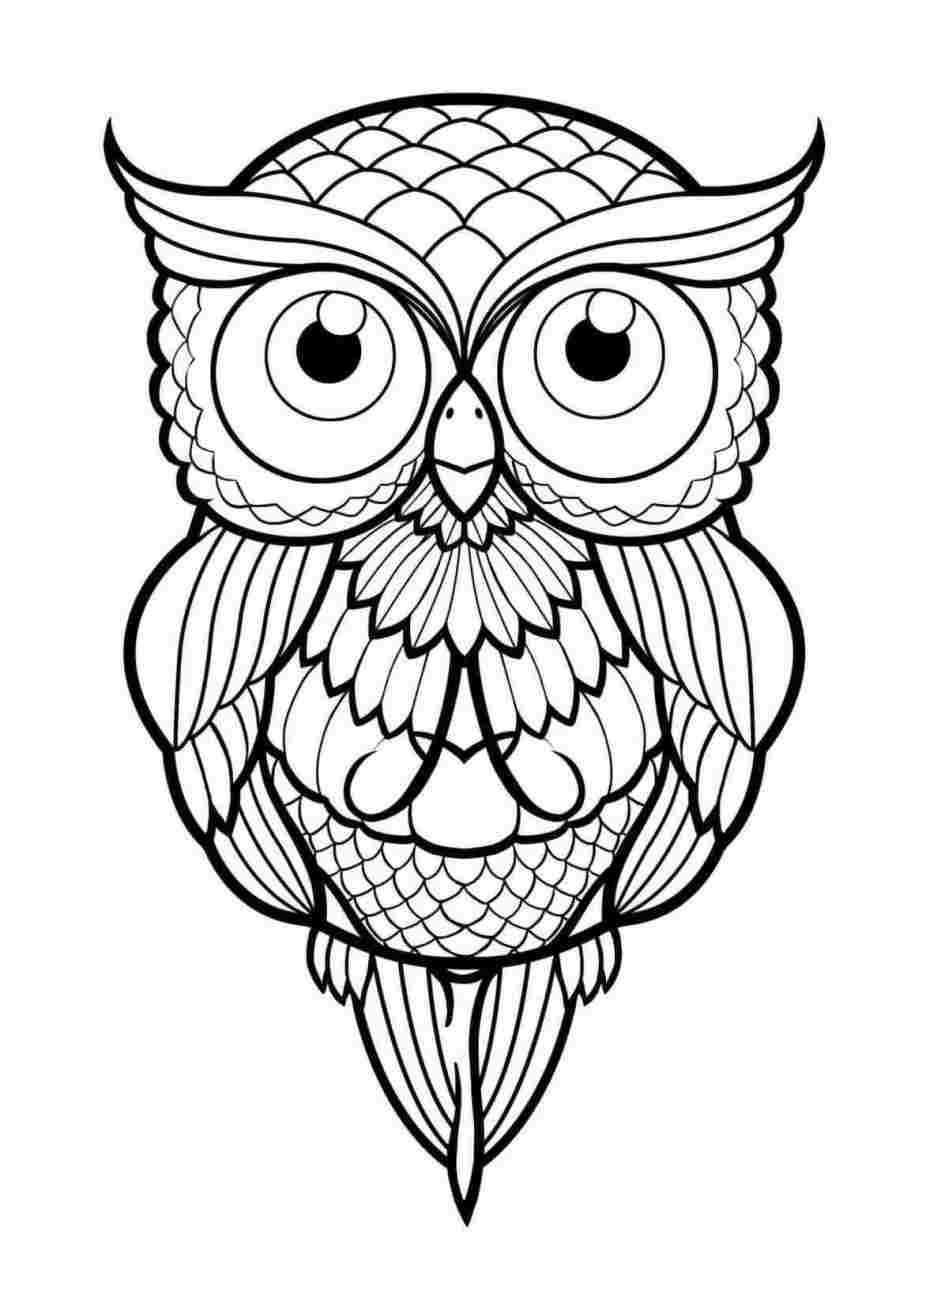 Simple Cute Owl Drawing | Free download on ClipArtMag